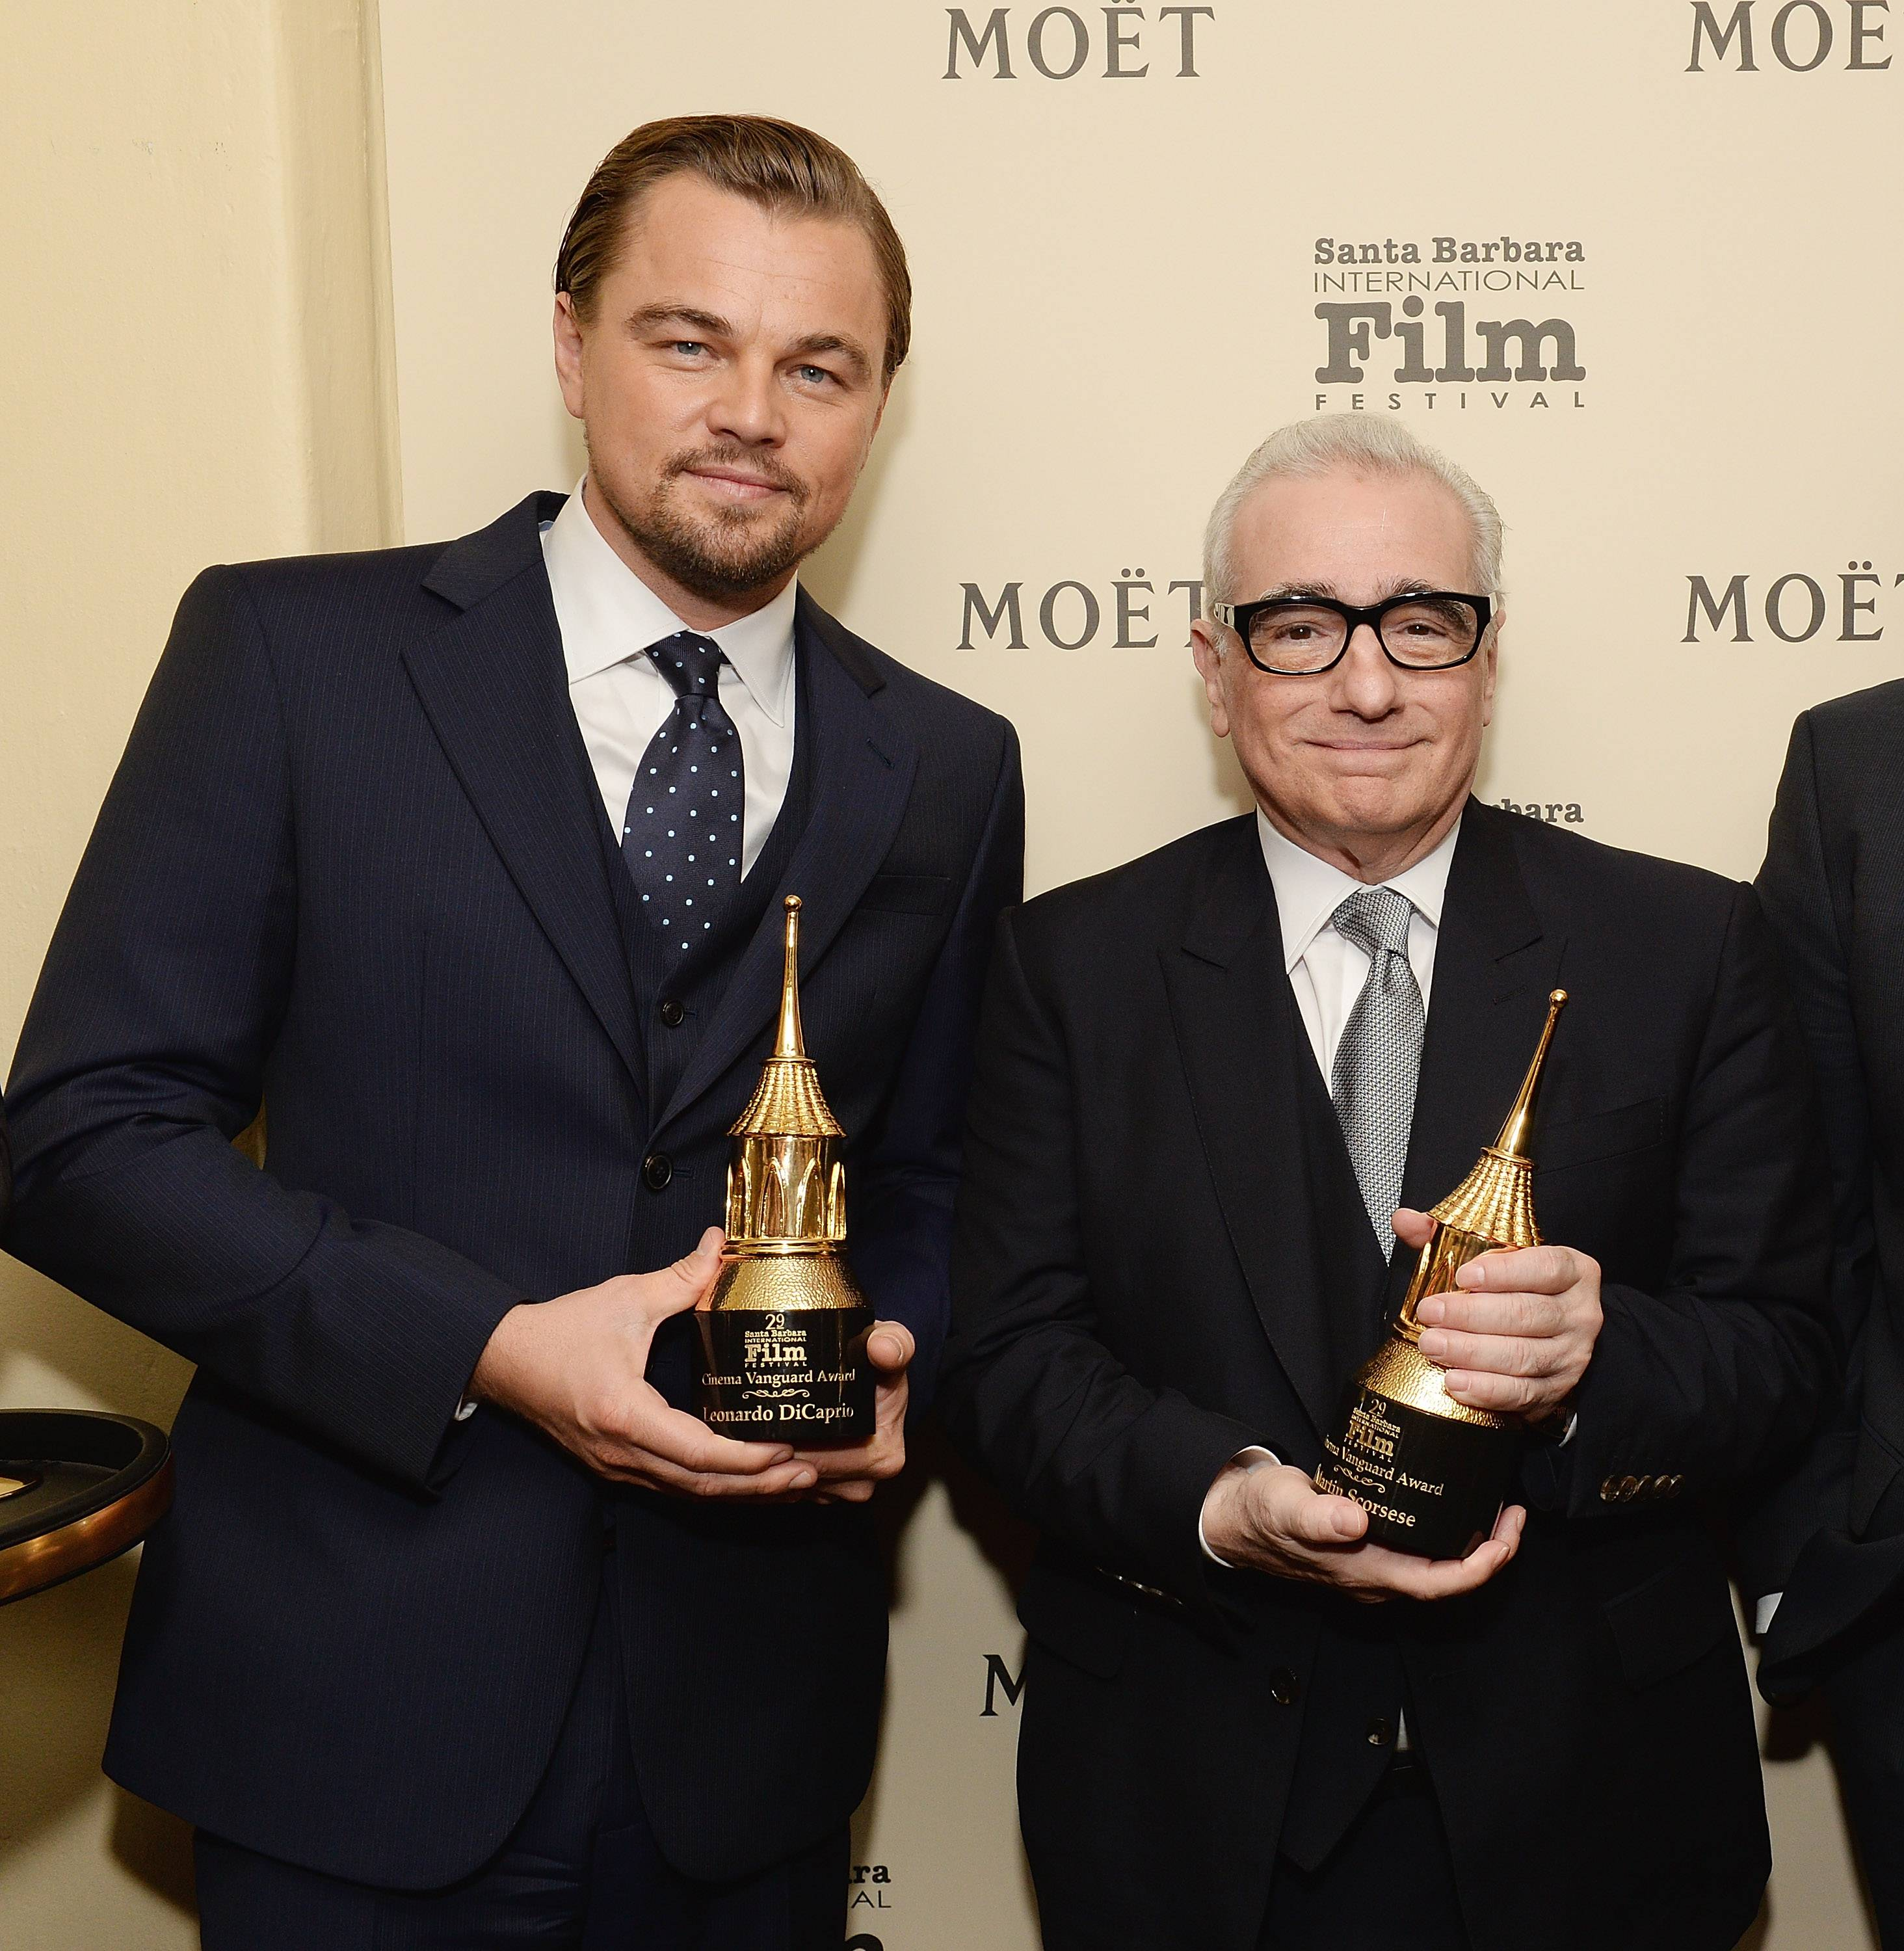 The Moet & Chandon Lounge At The Santa Barbara International Film Festival Honoring Martin Scorsese And Leonardo DiCaprio